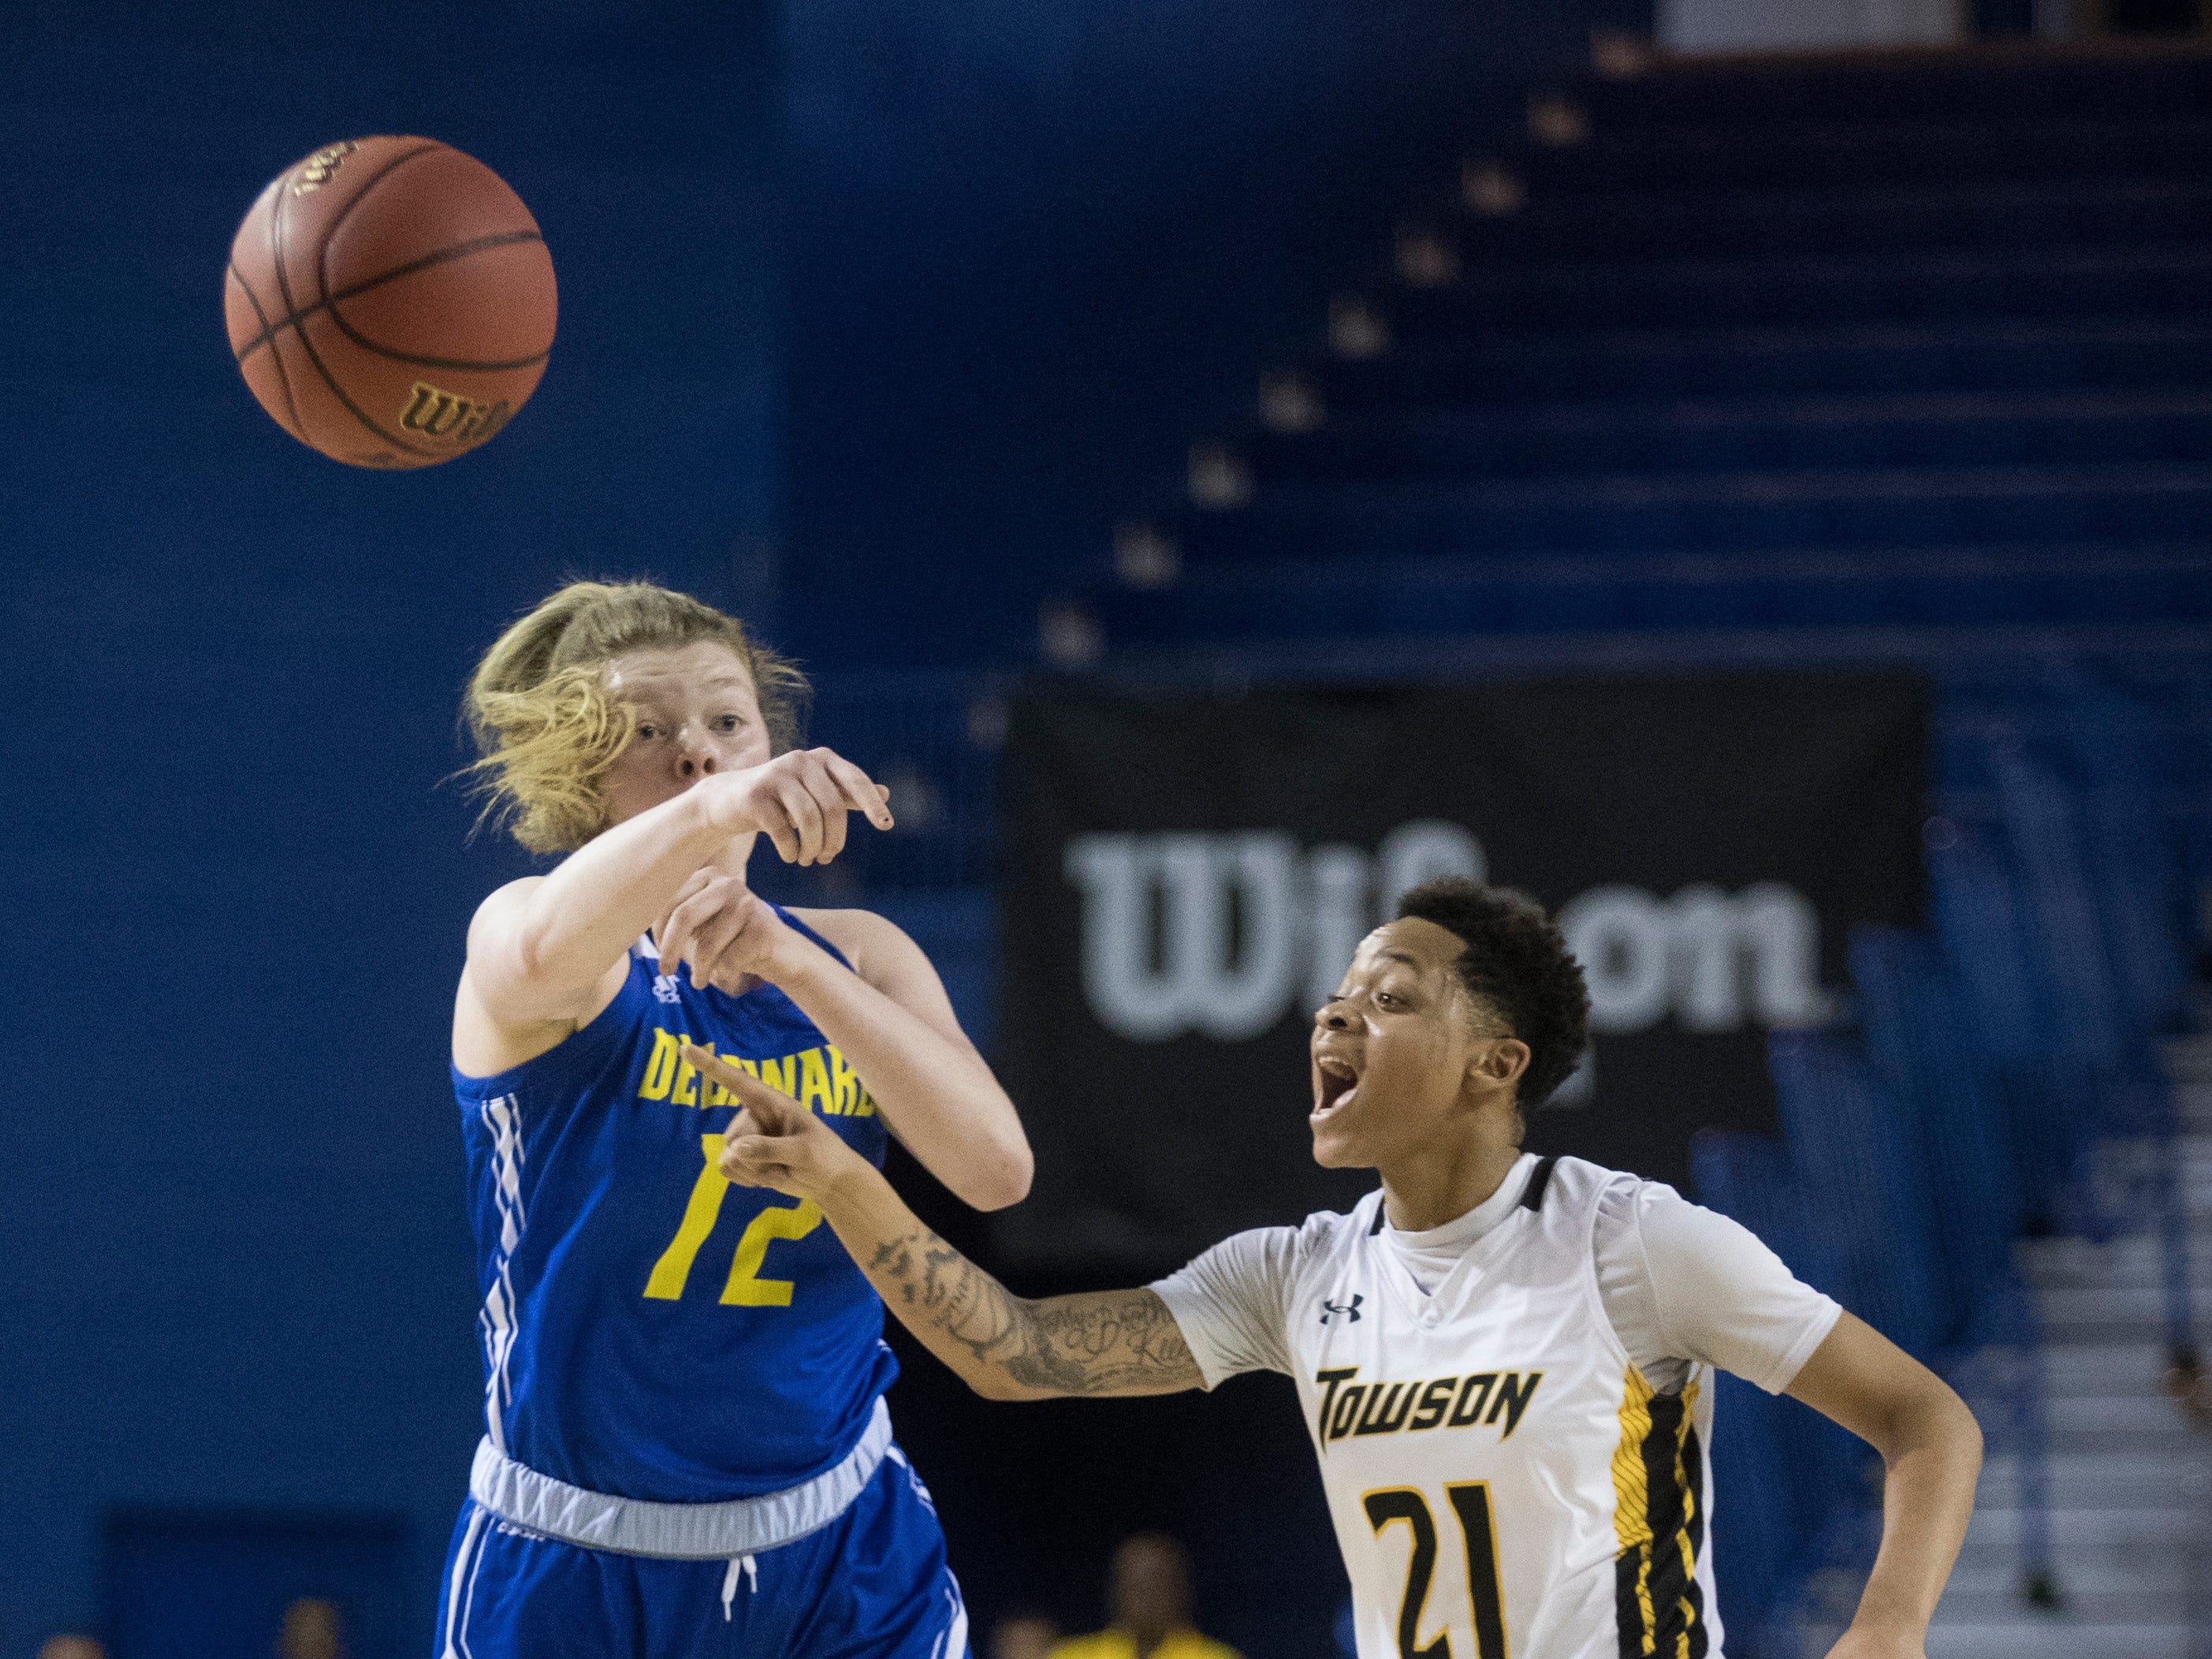 Delaware's Lizzie Oleary (12) passes to a teammate during their CAA quarterfinal against Towson. Towson defeated Delaware 59-49.